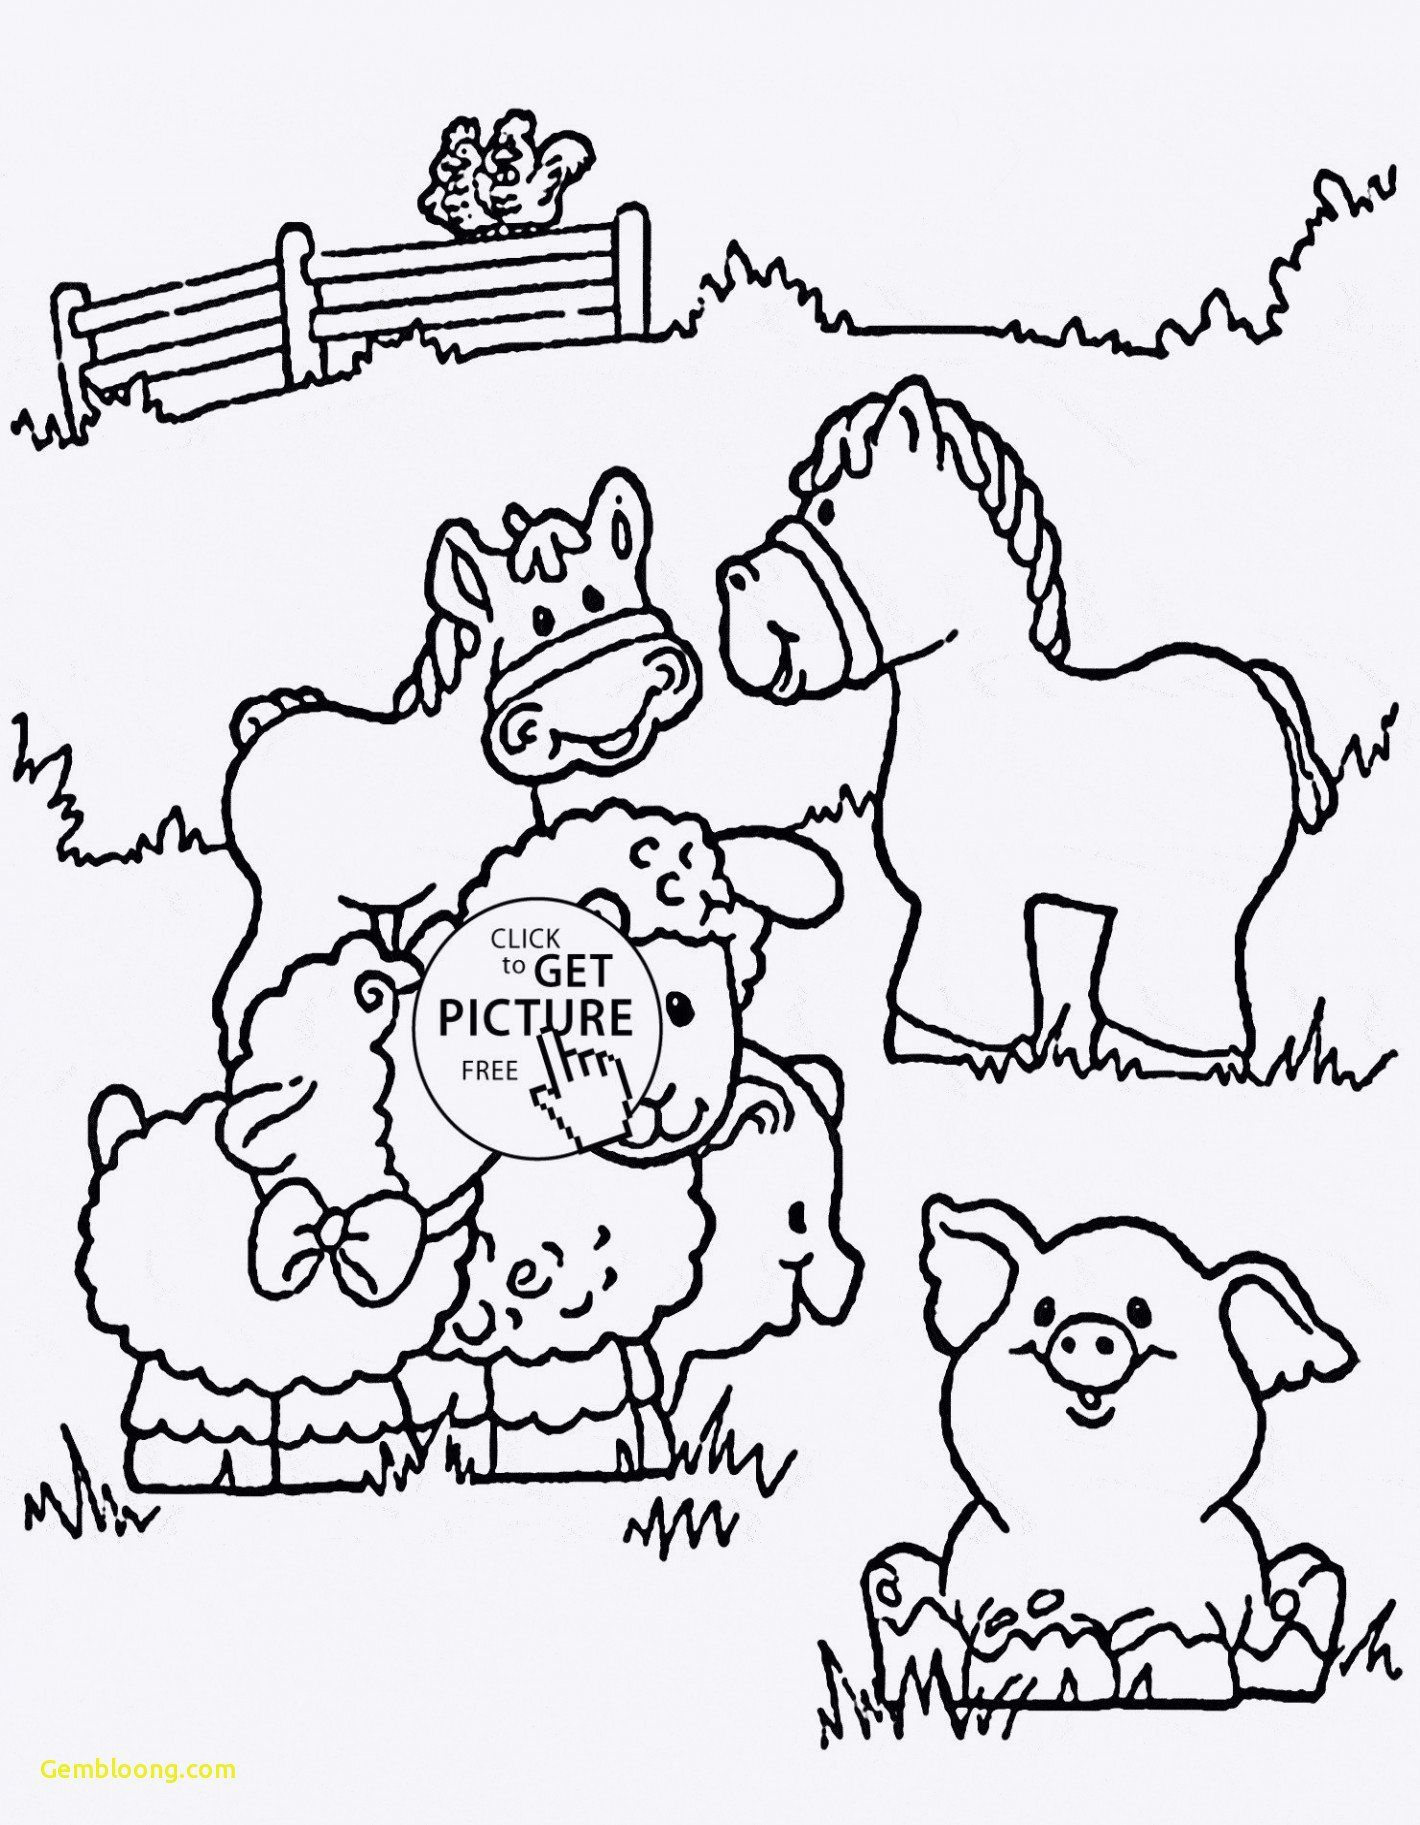 Coloring Pages Farm Animals Coloring Pages Farm Animal Coloring Sheets New Farm In 2020 Farm Coloring Pages Animal Coloring Pages Horse Coloring Pages